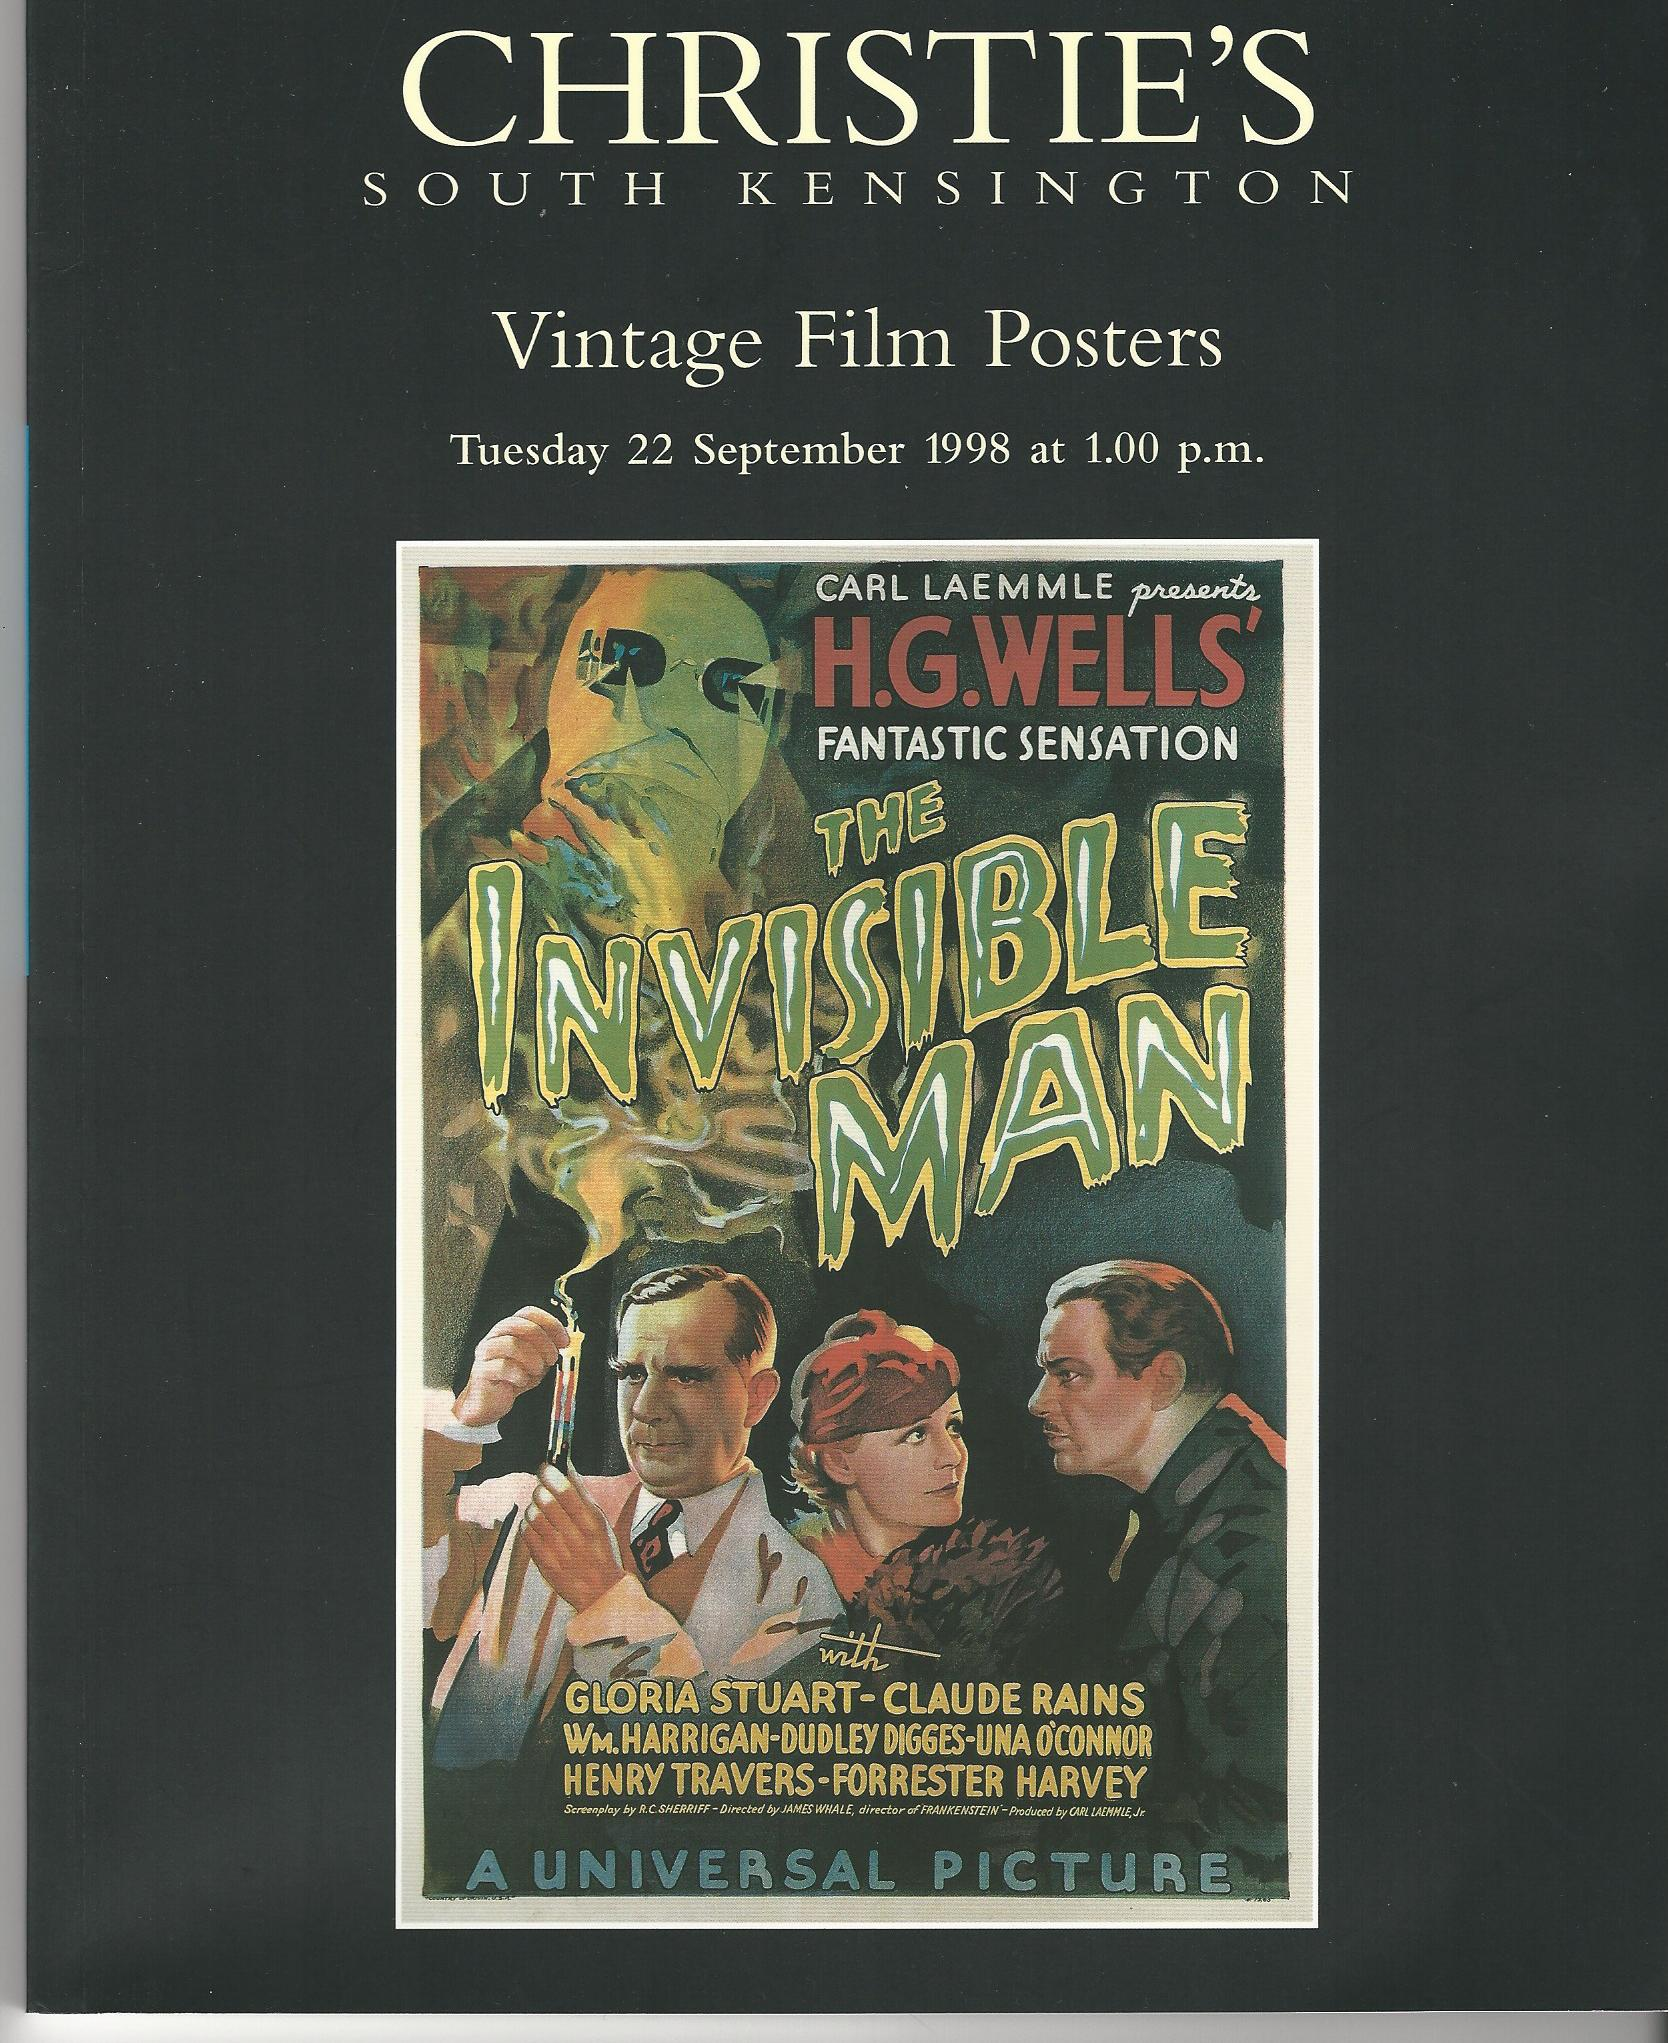 Image for Christie's South Kensington Vintage Film Posters, 22 September 1998.